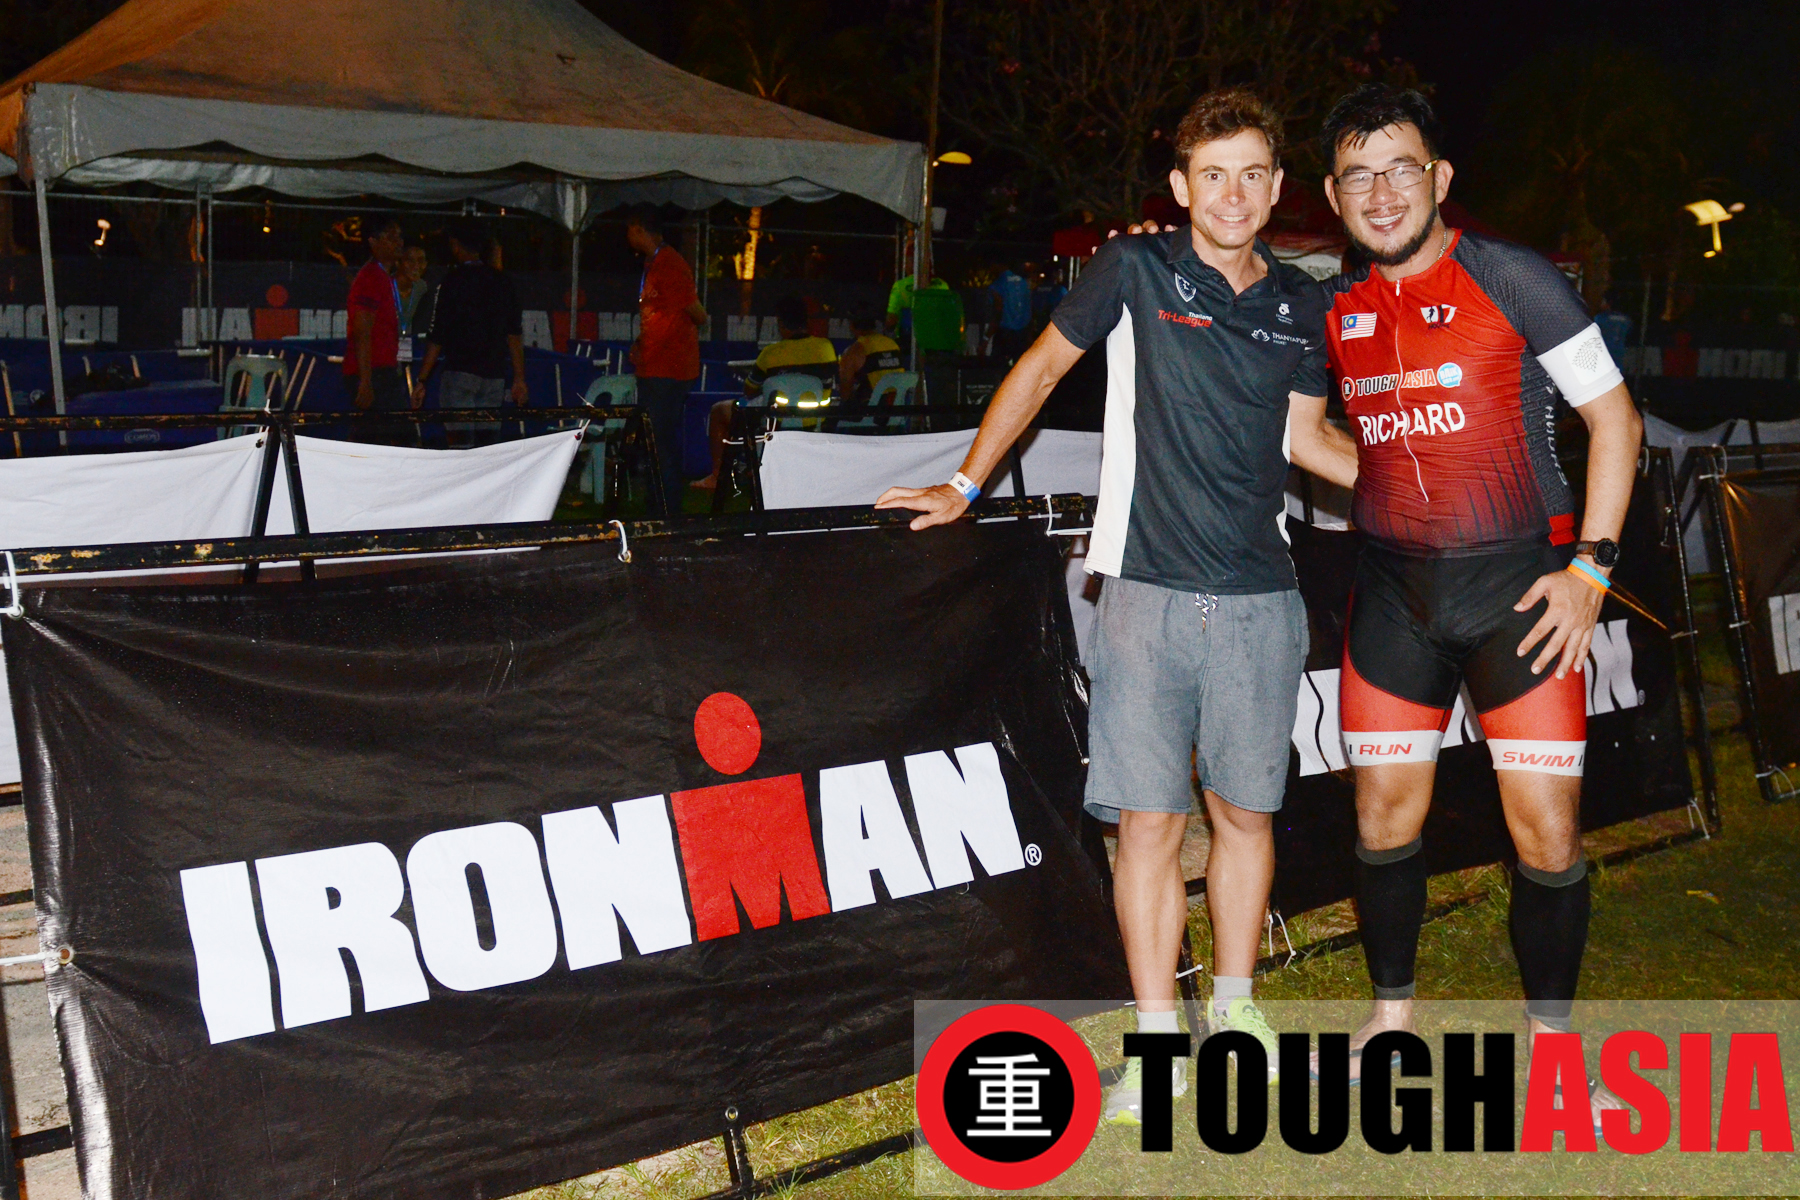 Richard Lee had the honour of receiving his finisher's medal from Ironman Malaysia Champion, Fredrik Croneborg (left).